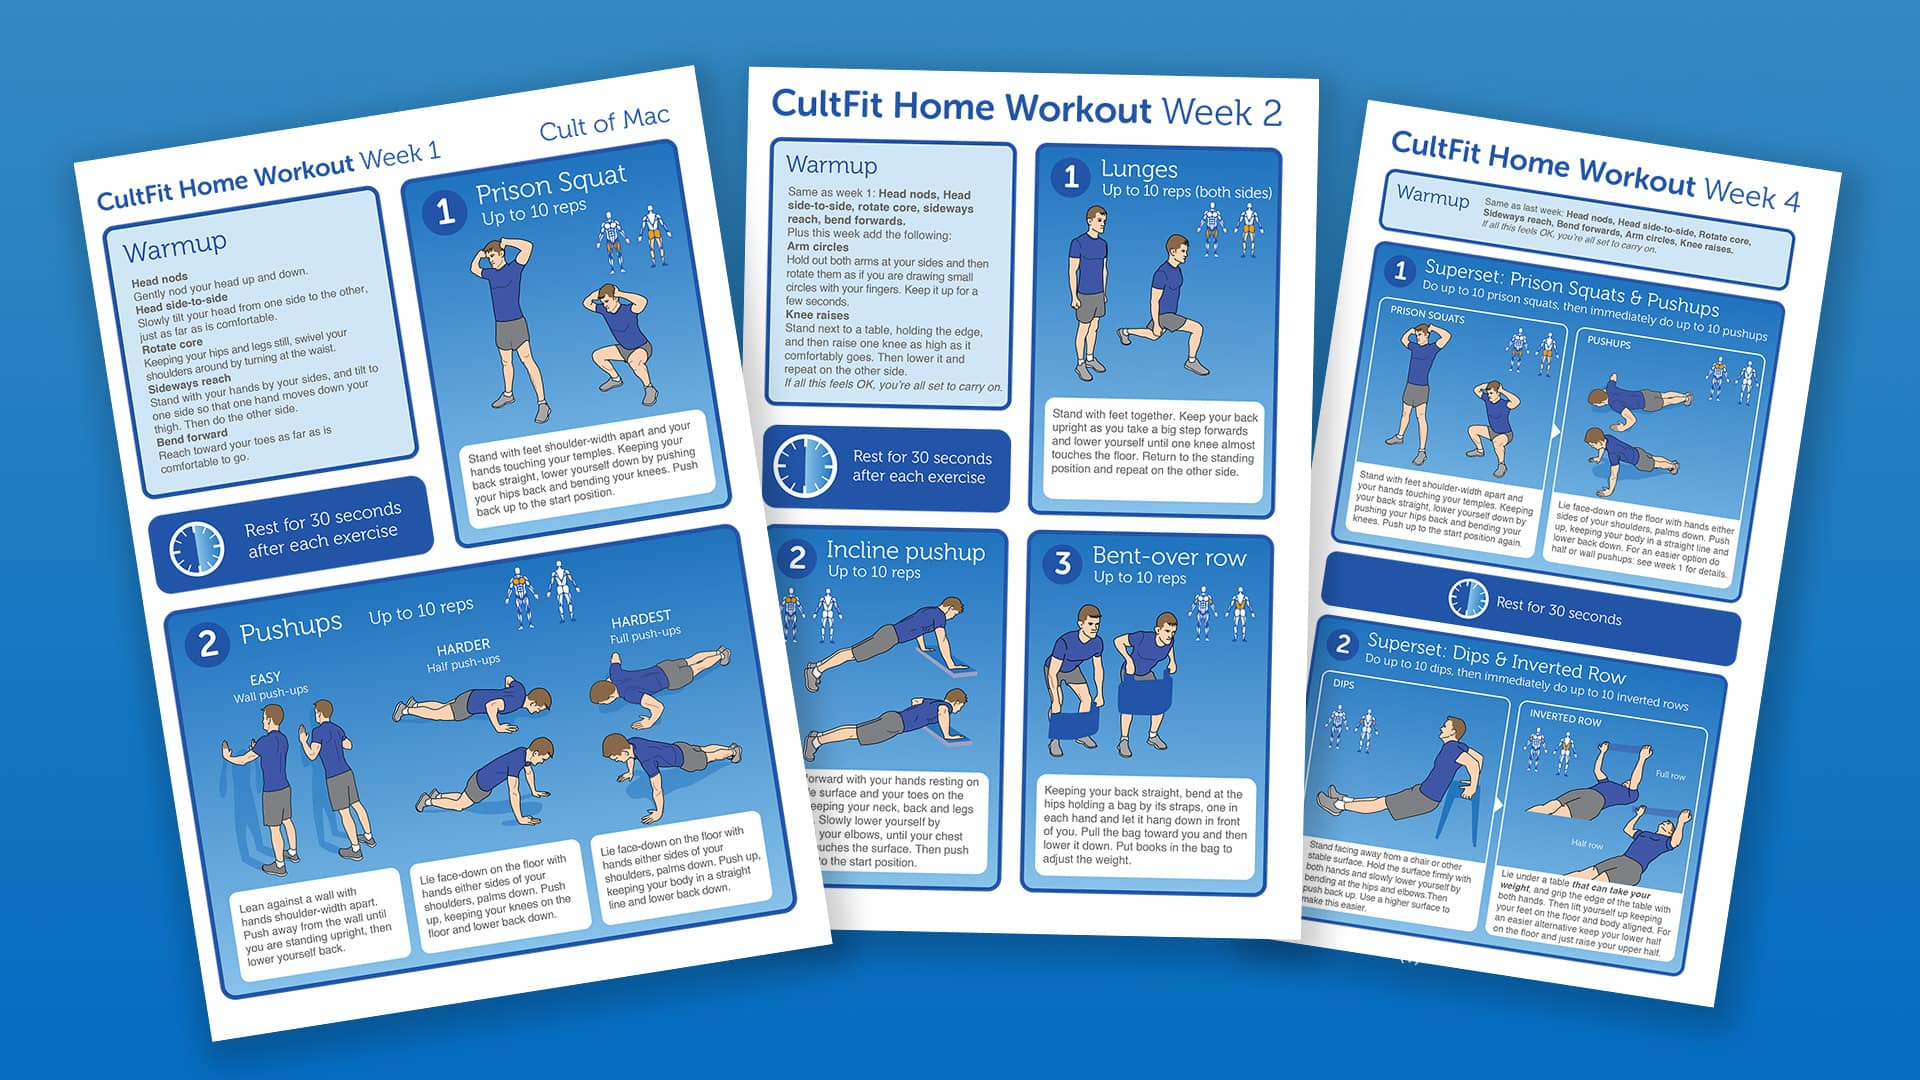 Check out our CultFit Home Workout